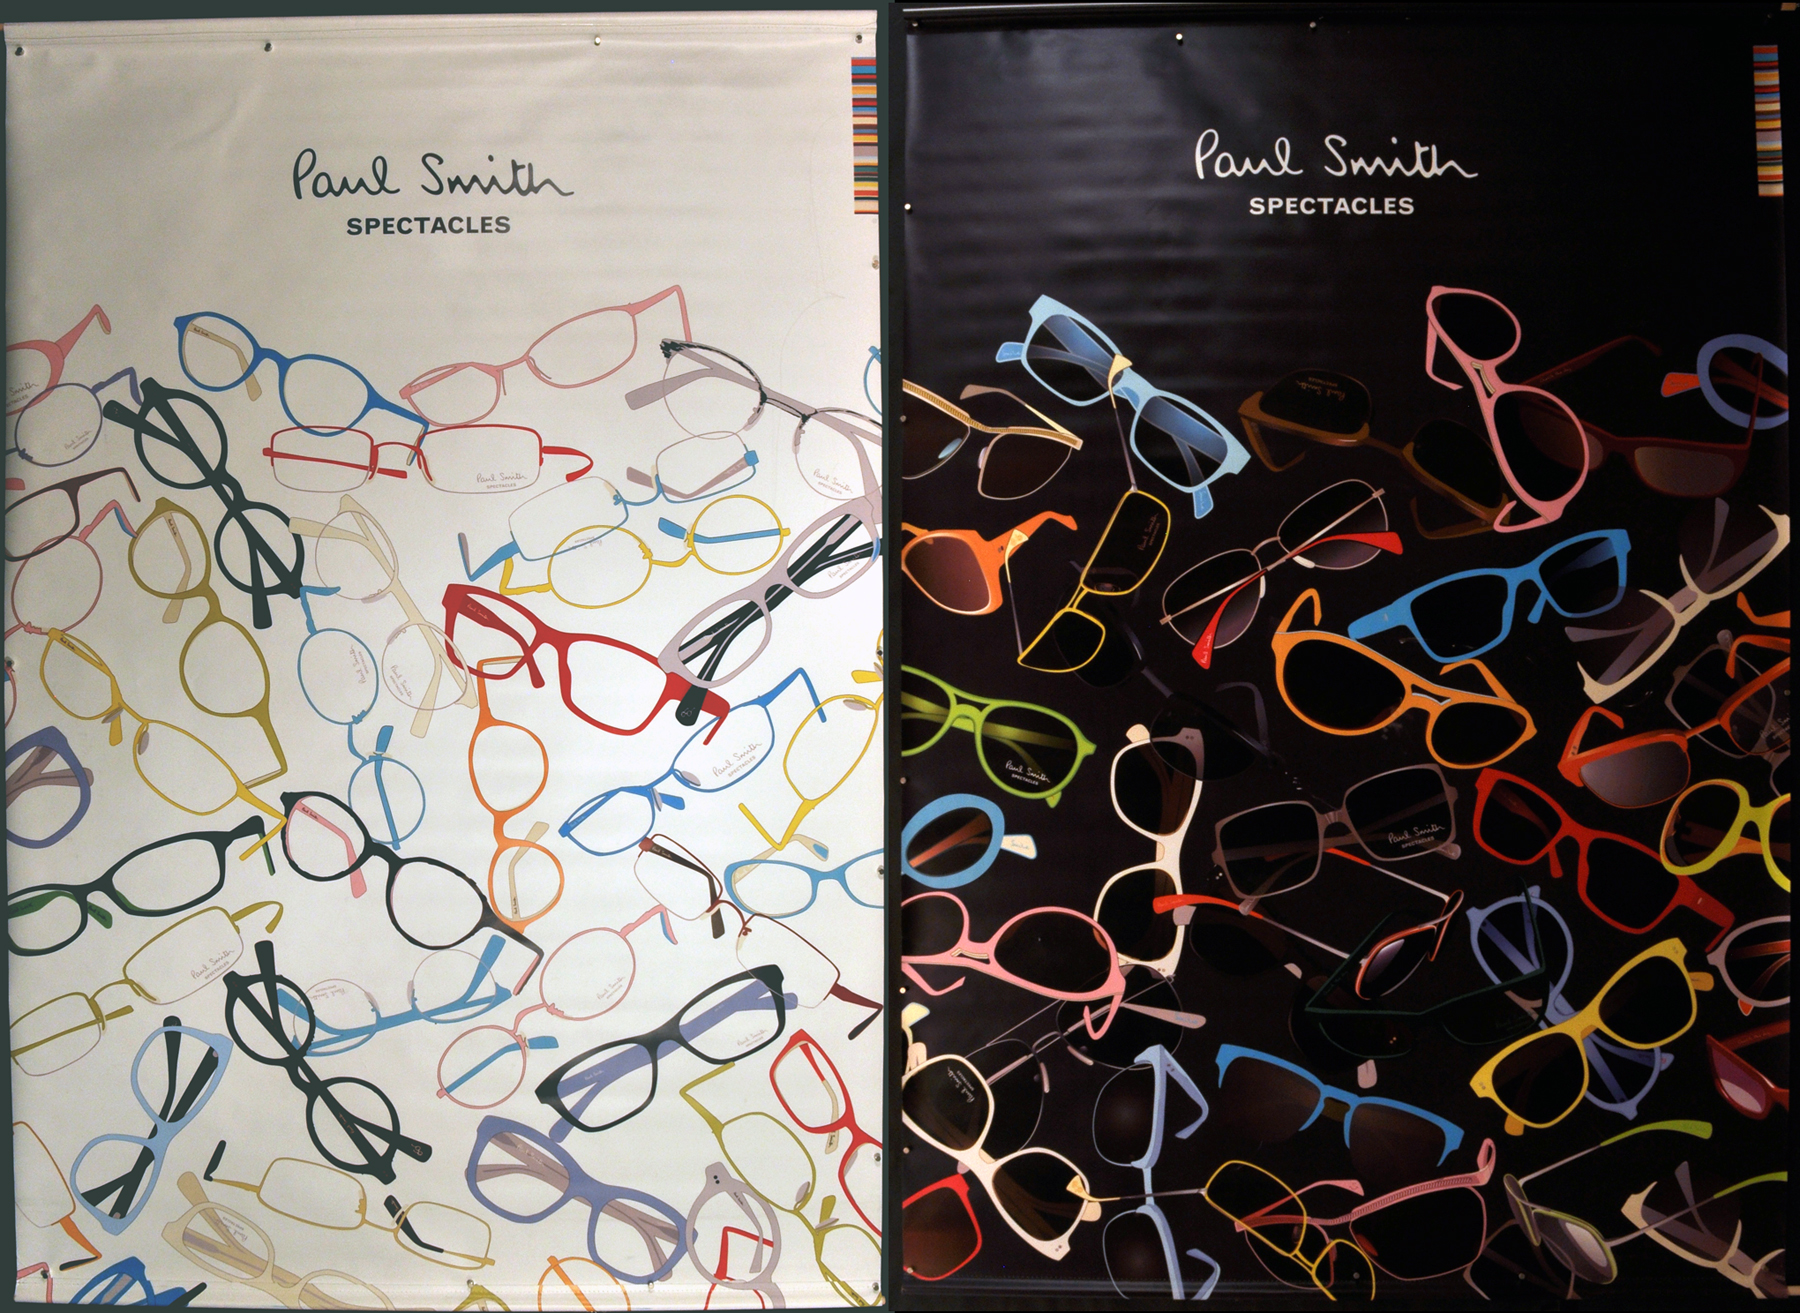 Paul Smith SPECTACLES Eyewear Advertising Poster | Limited ...